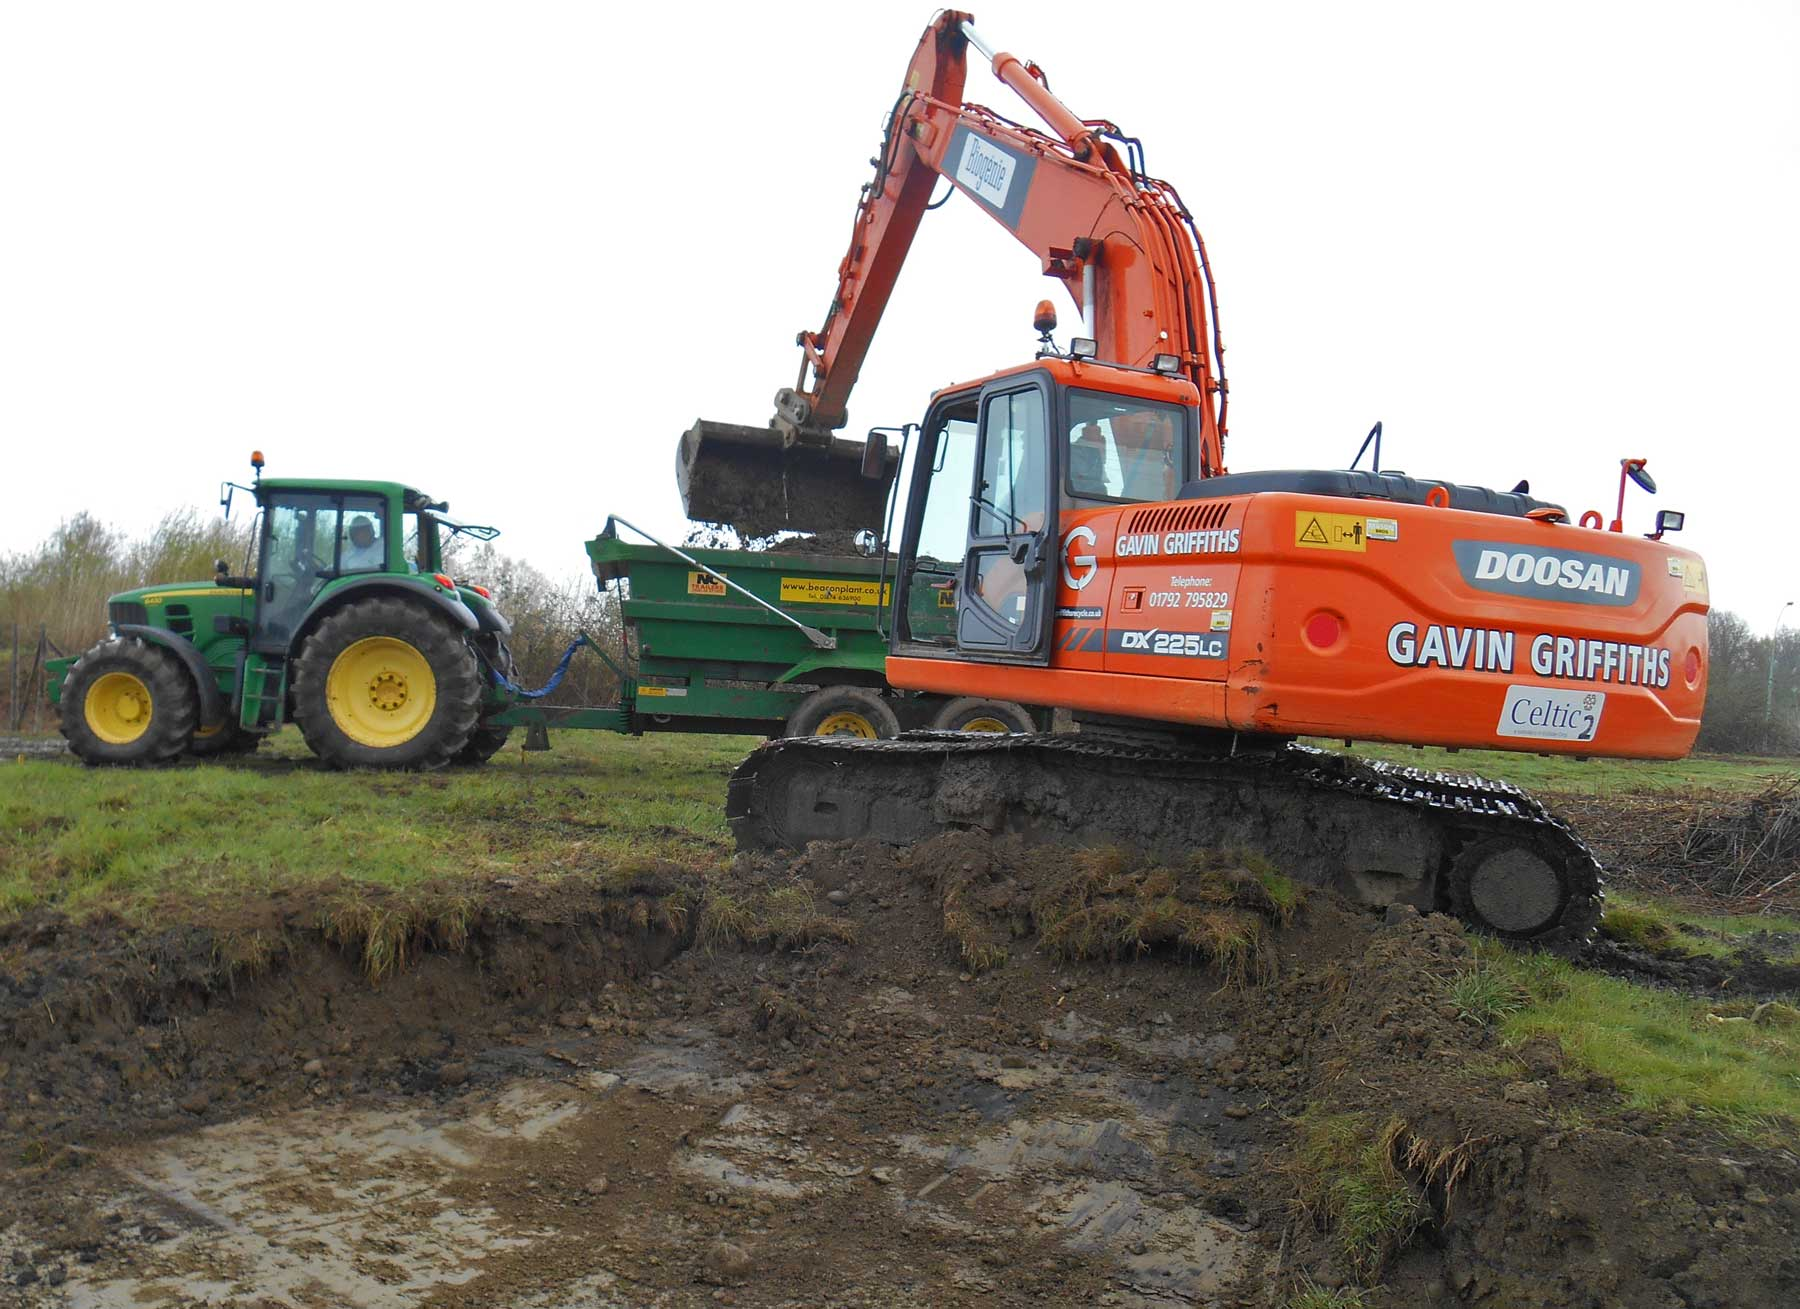 Gavin Griffiths Land Excavator